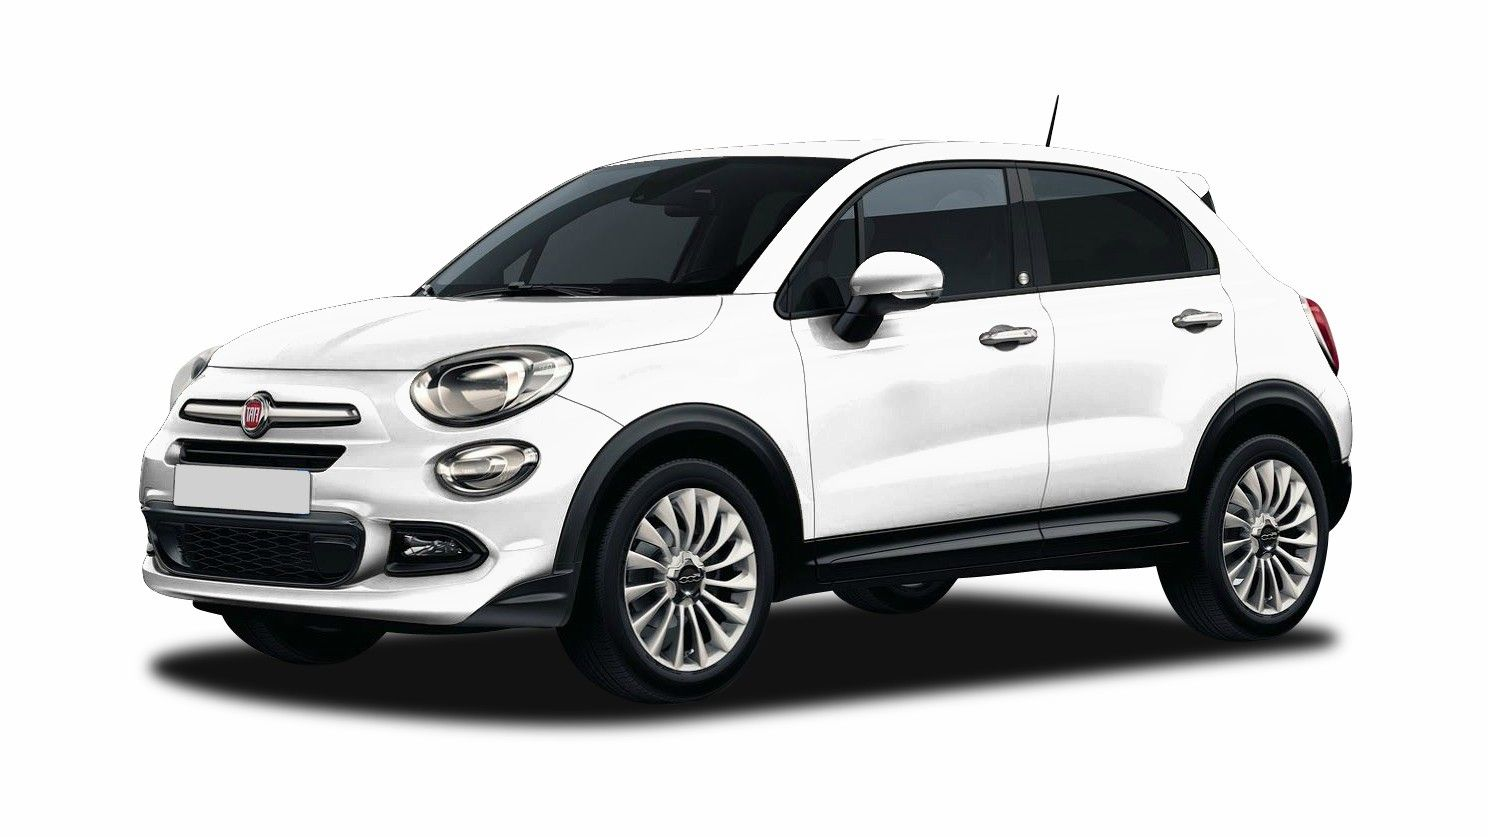 fiat 500x 4x2 et suv 5 portes essence 1 4 multiair 140 ch bo te manuelle finition. Black Bedroom Furniture Sets. Home Design Ideas